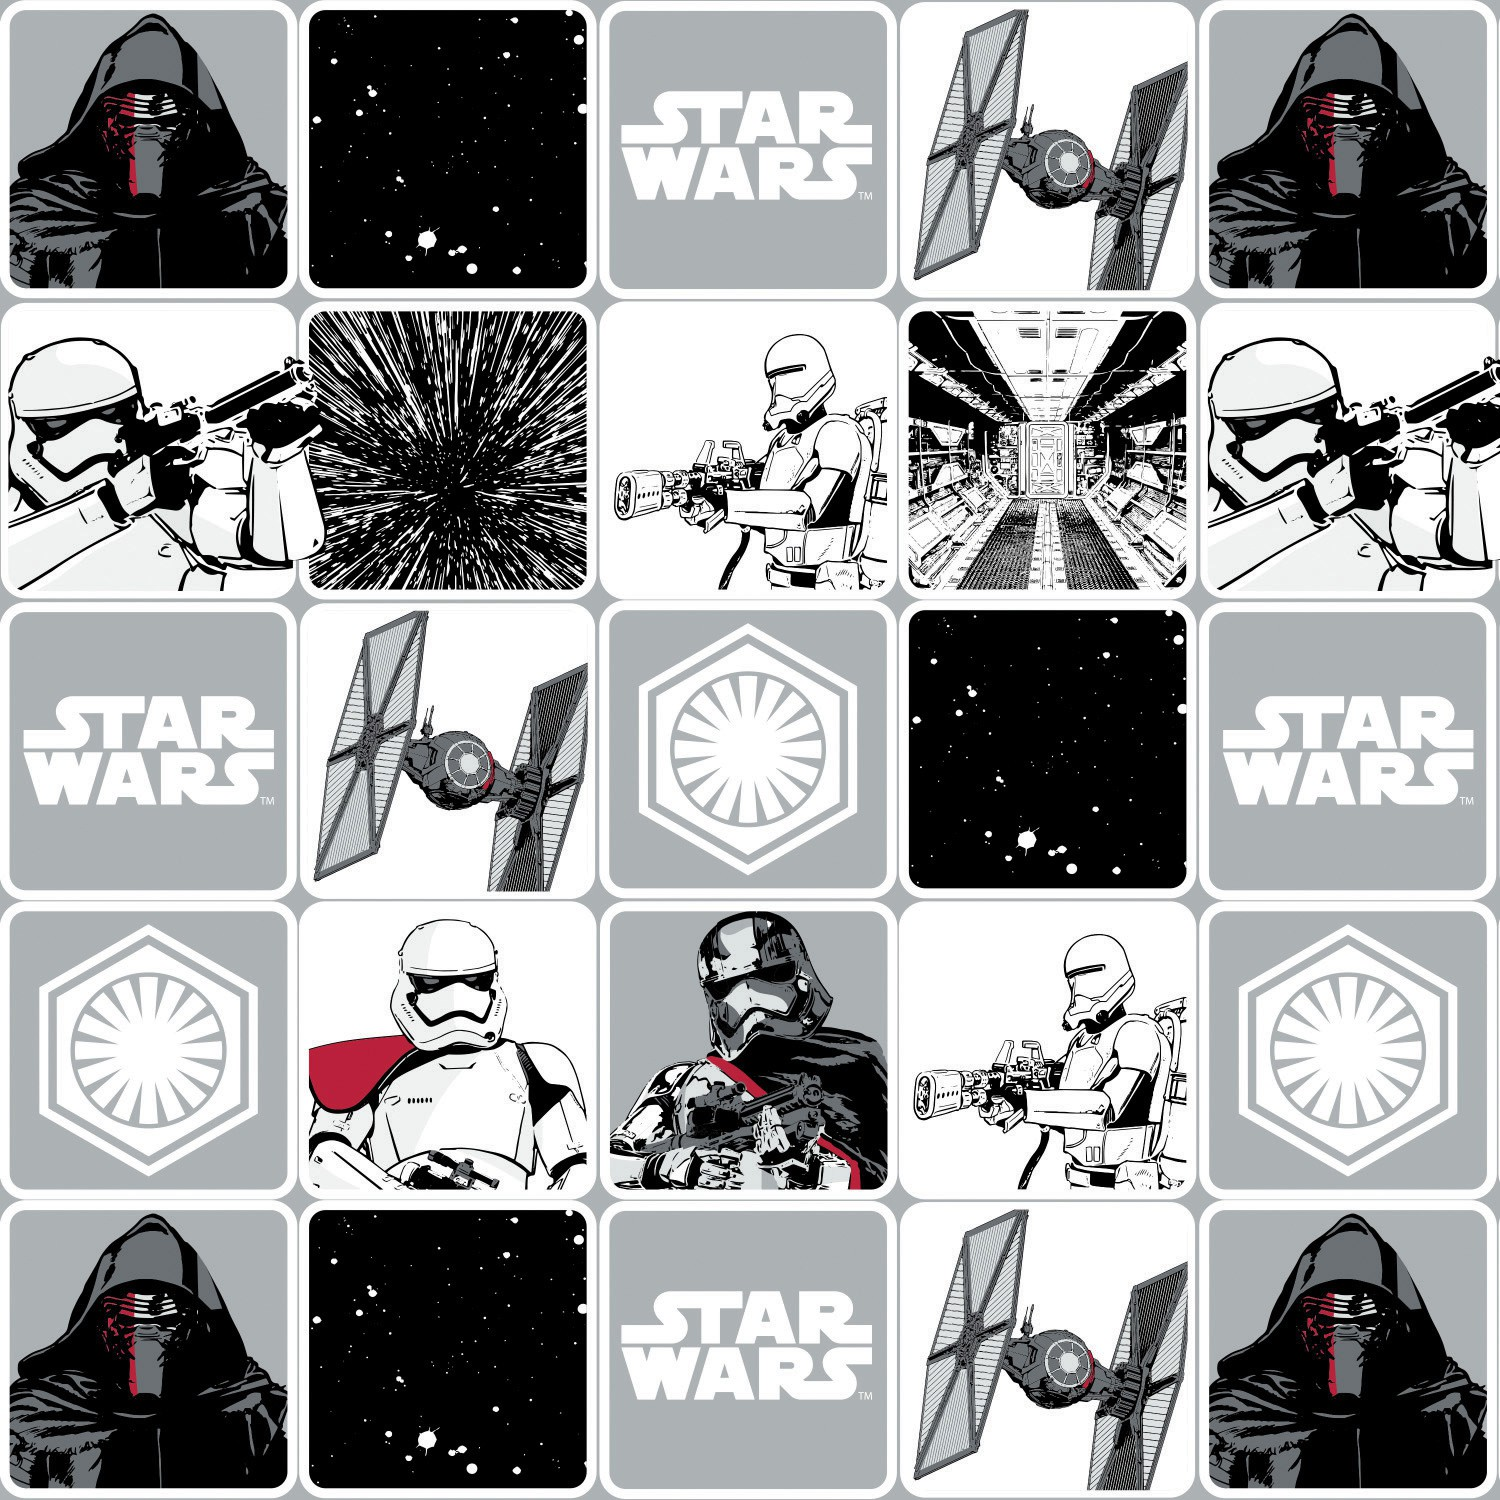 Stone Star Wars The Force Awakens Grid Starwars - Click Image to Close